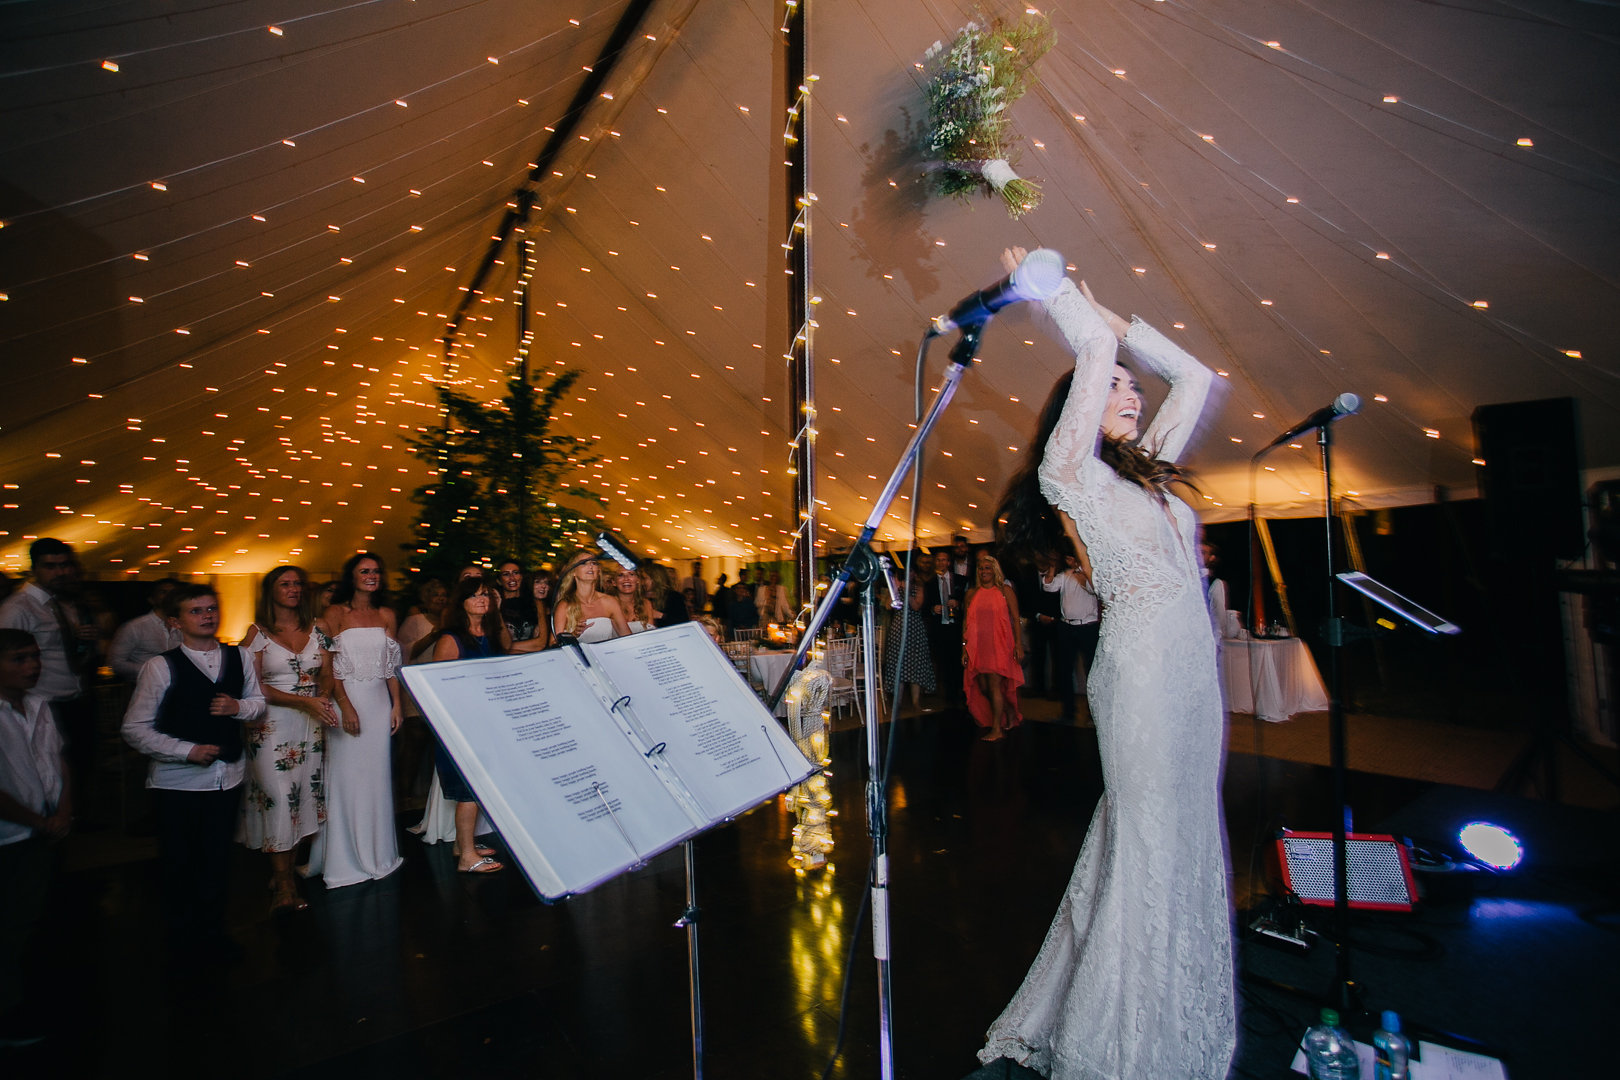 The bride throwing her bouquet in a pealit marquee!